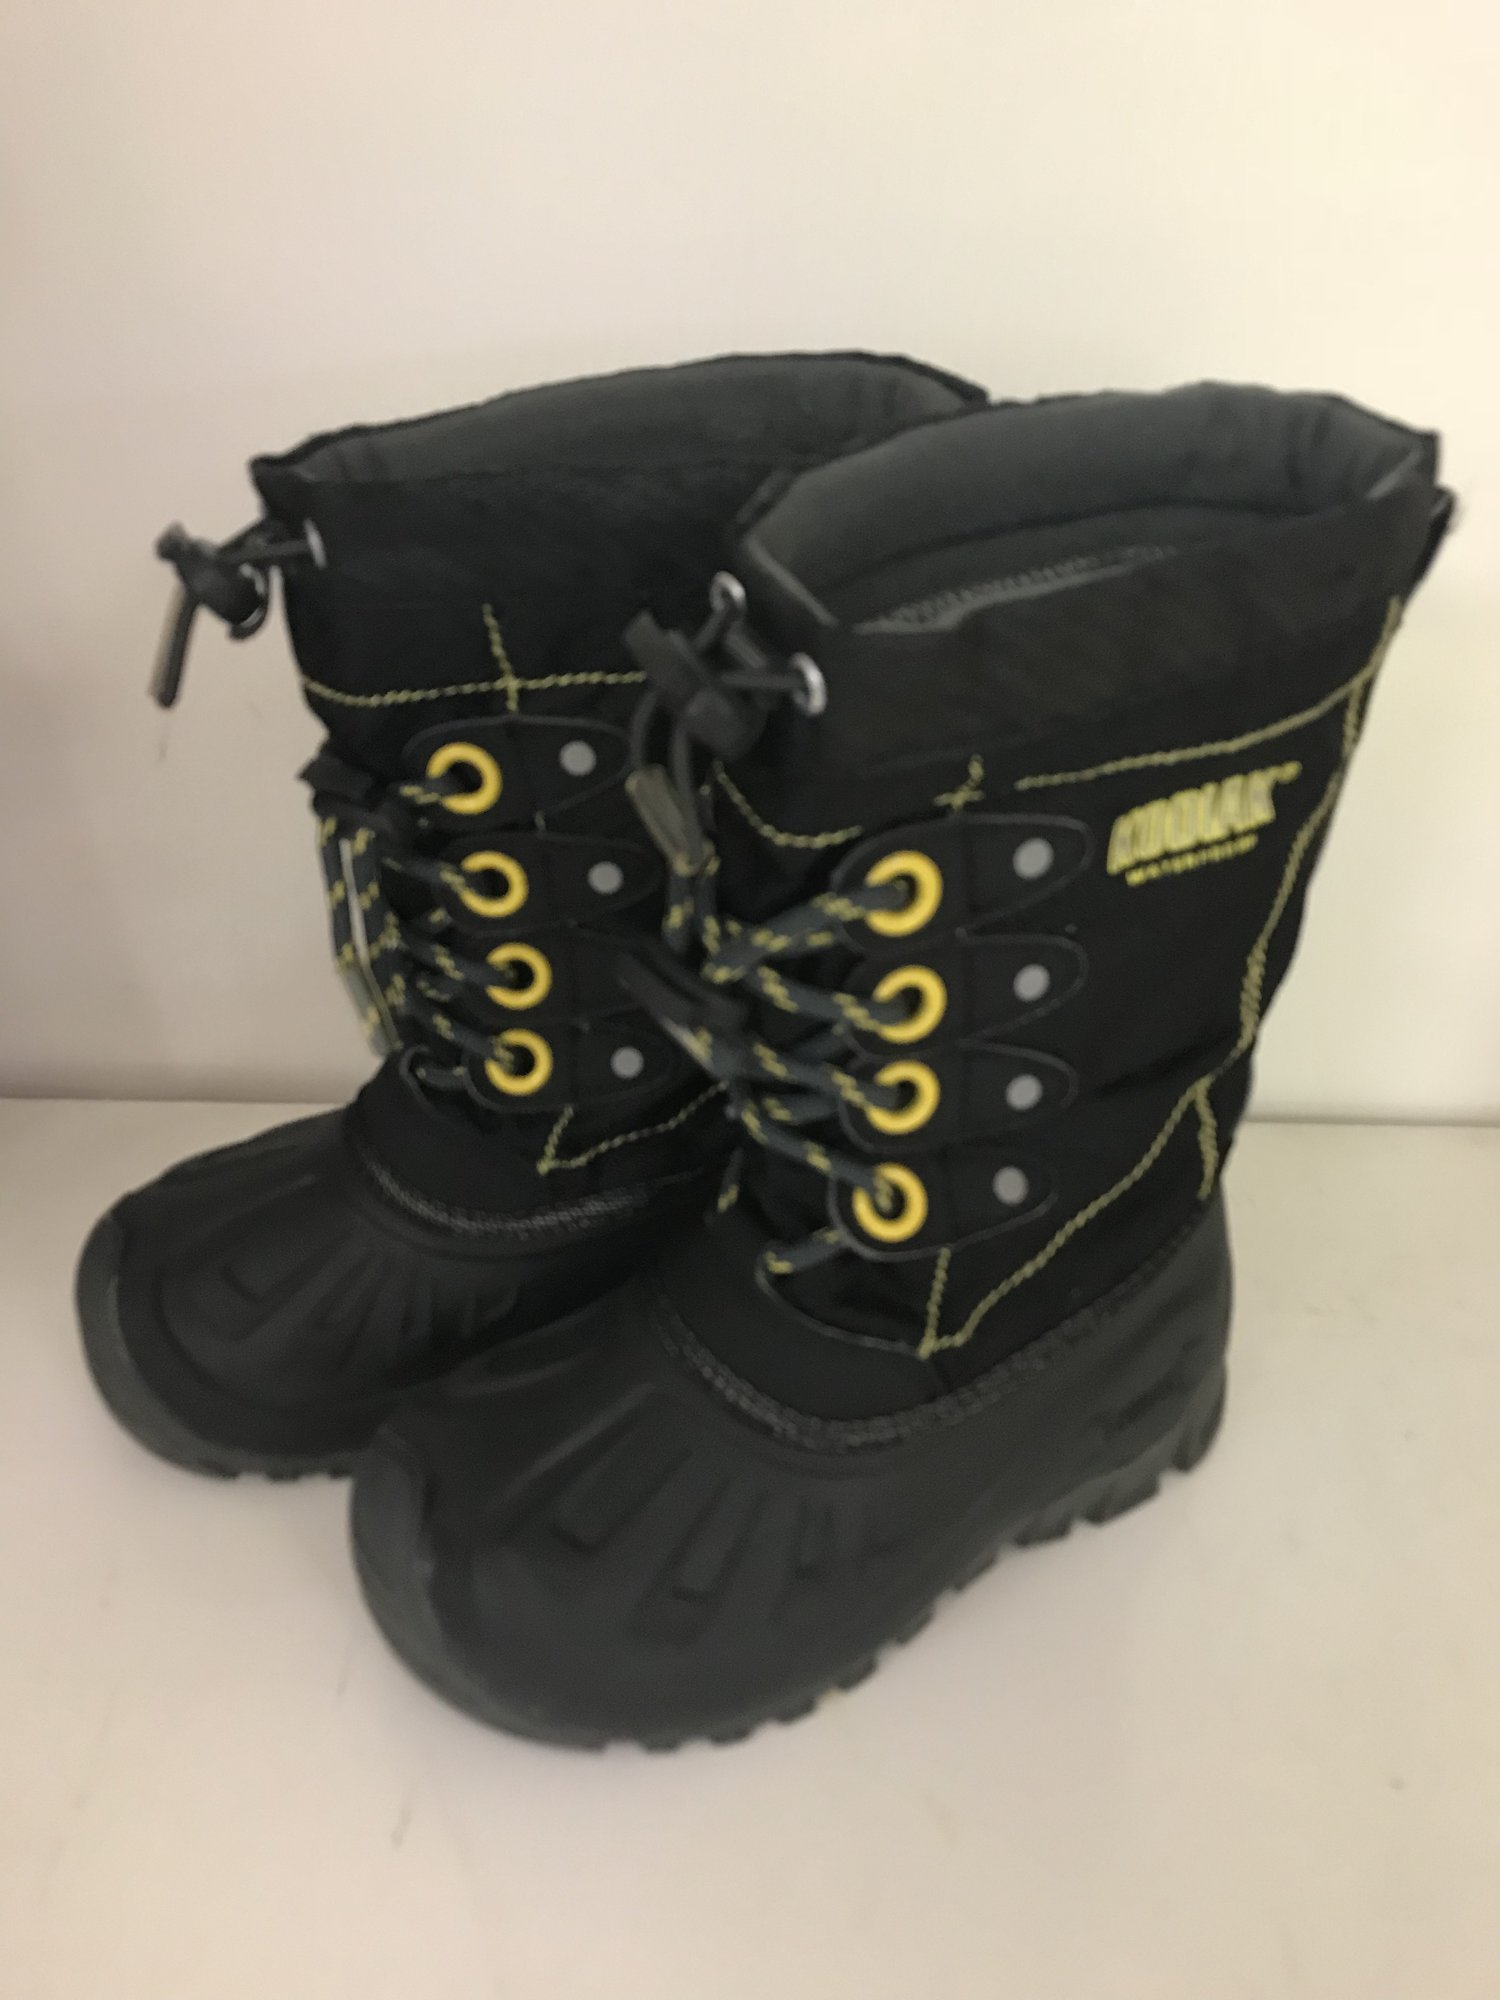 Kodiak Snow Boots in excellent condition! size 12